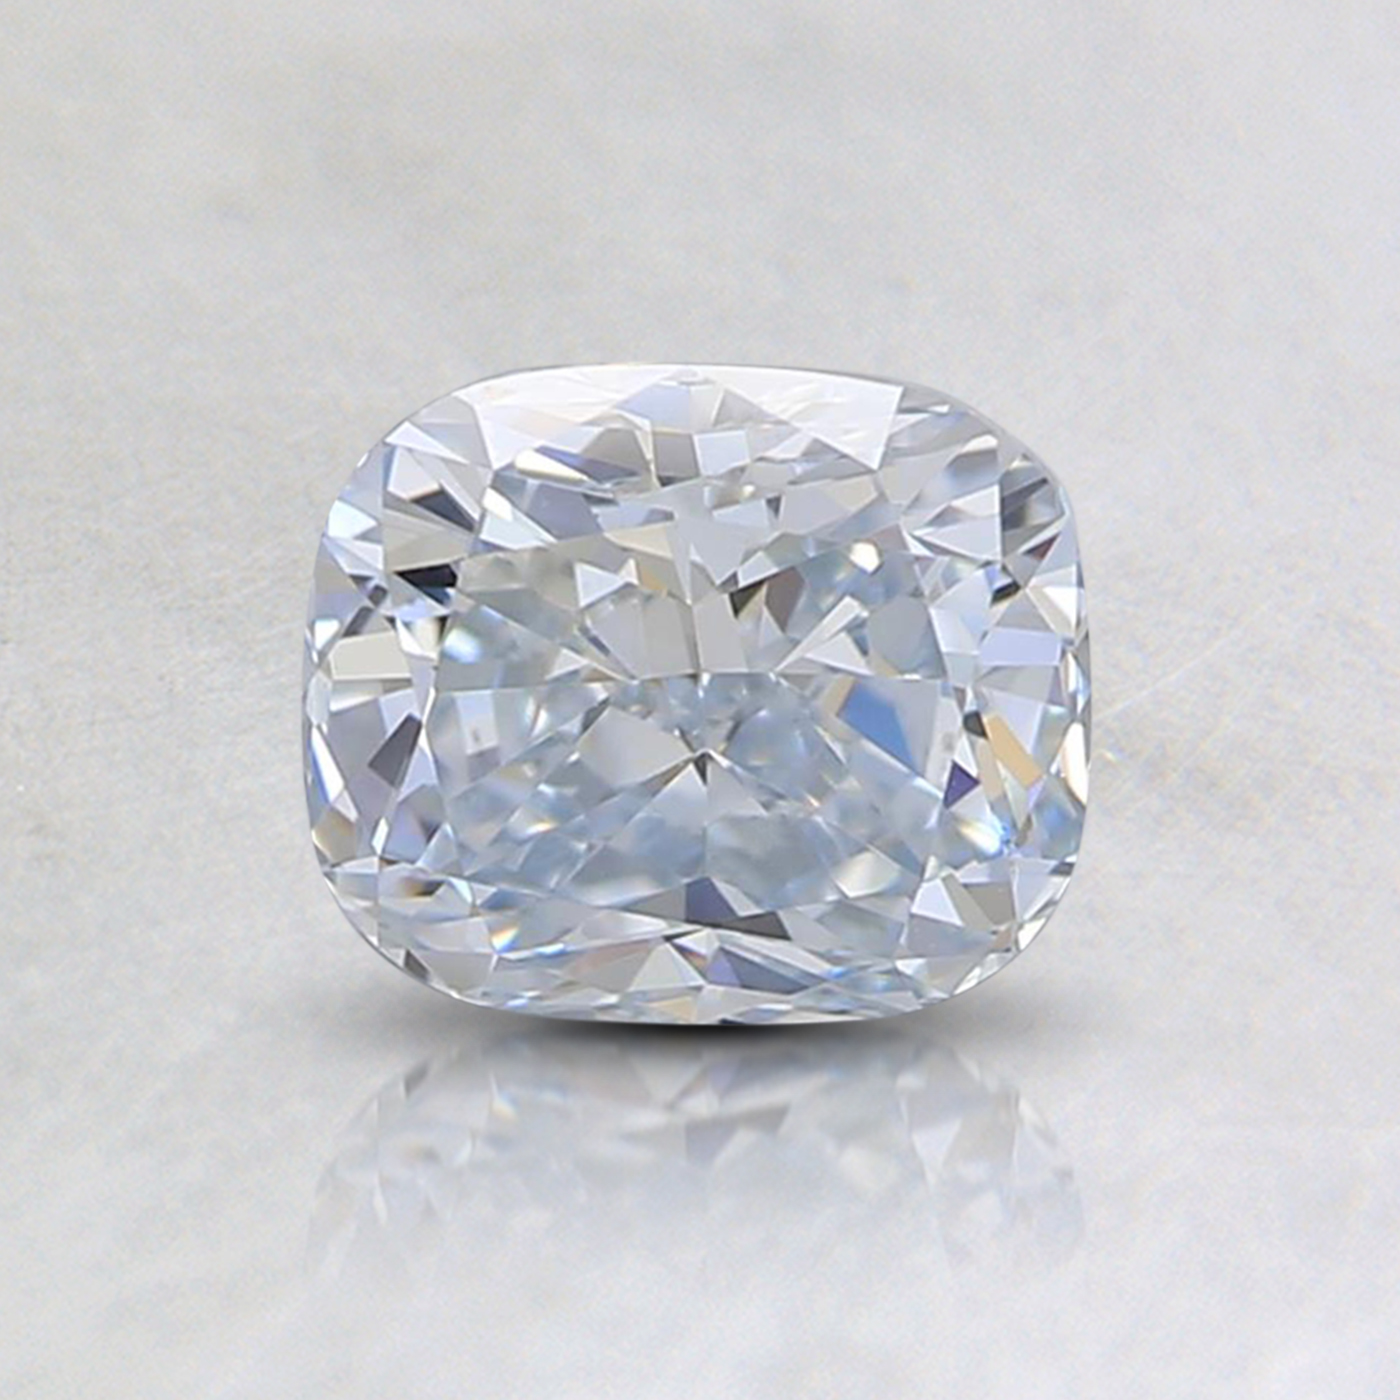 0.78 Ct. Light Blue Cushion Lab Created Diamond